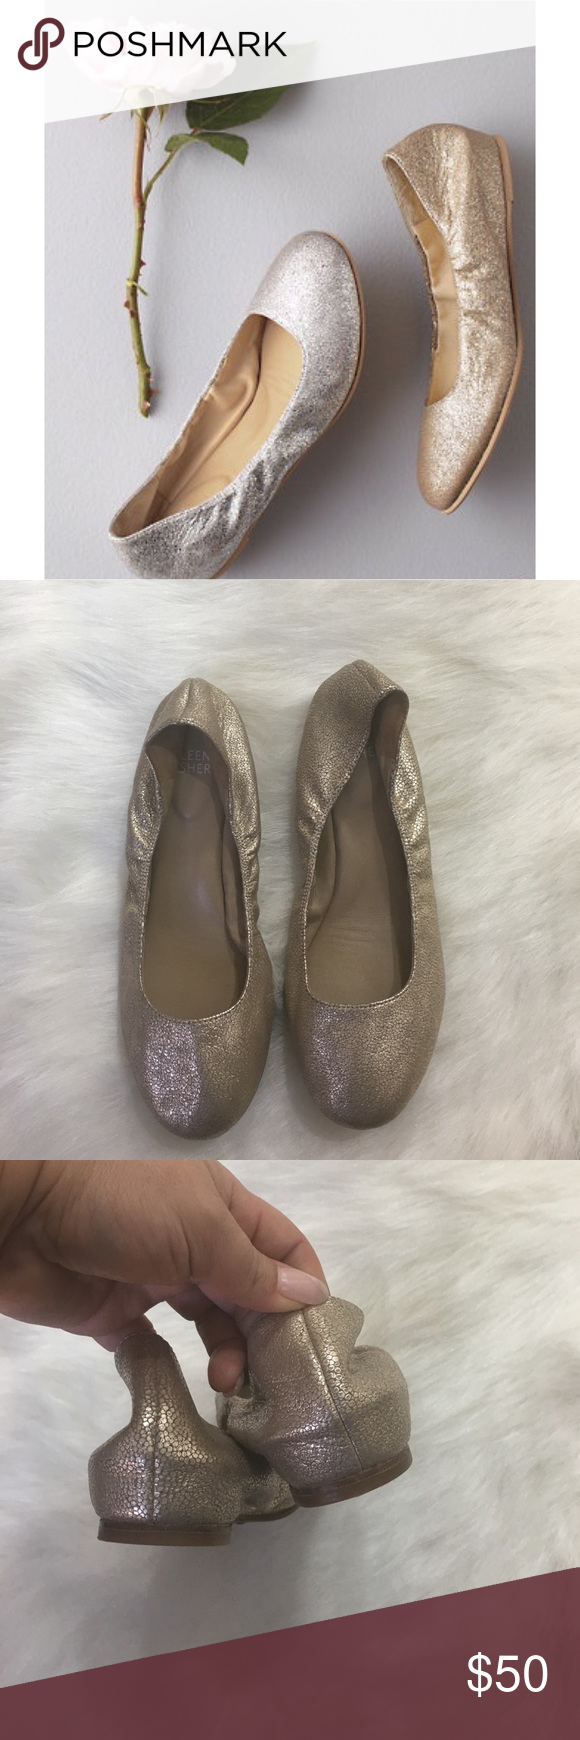 Eileen Fisher slip-on gold ballet flat These are so cute! One inch hidden wedge, round toe ballet flat. Leather. Size 6 1/2. Stretch uppers and padded footbed. Gold pewter. Leather upper and leather sole. Excellent condition!! Eileen Fisher Shoes Flats & Loafers